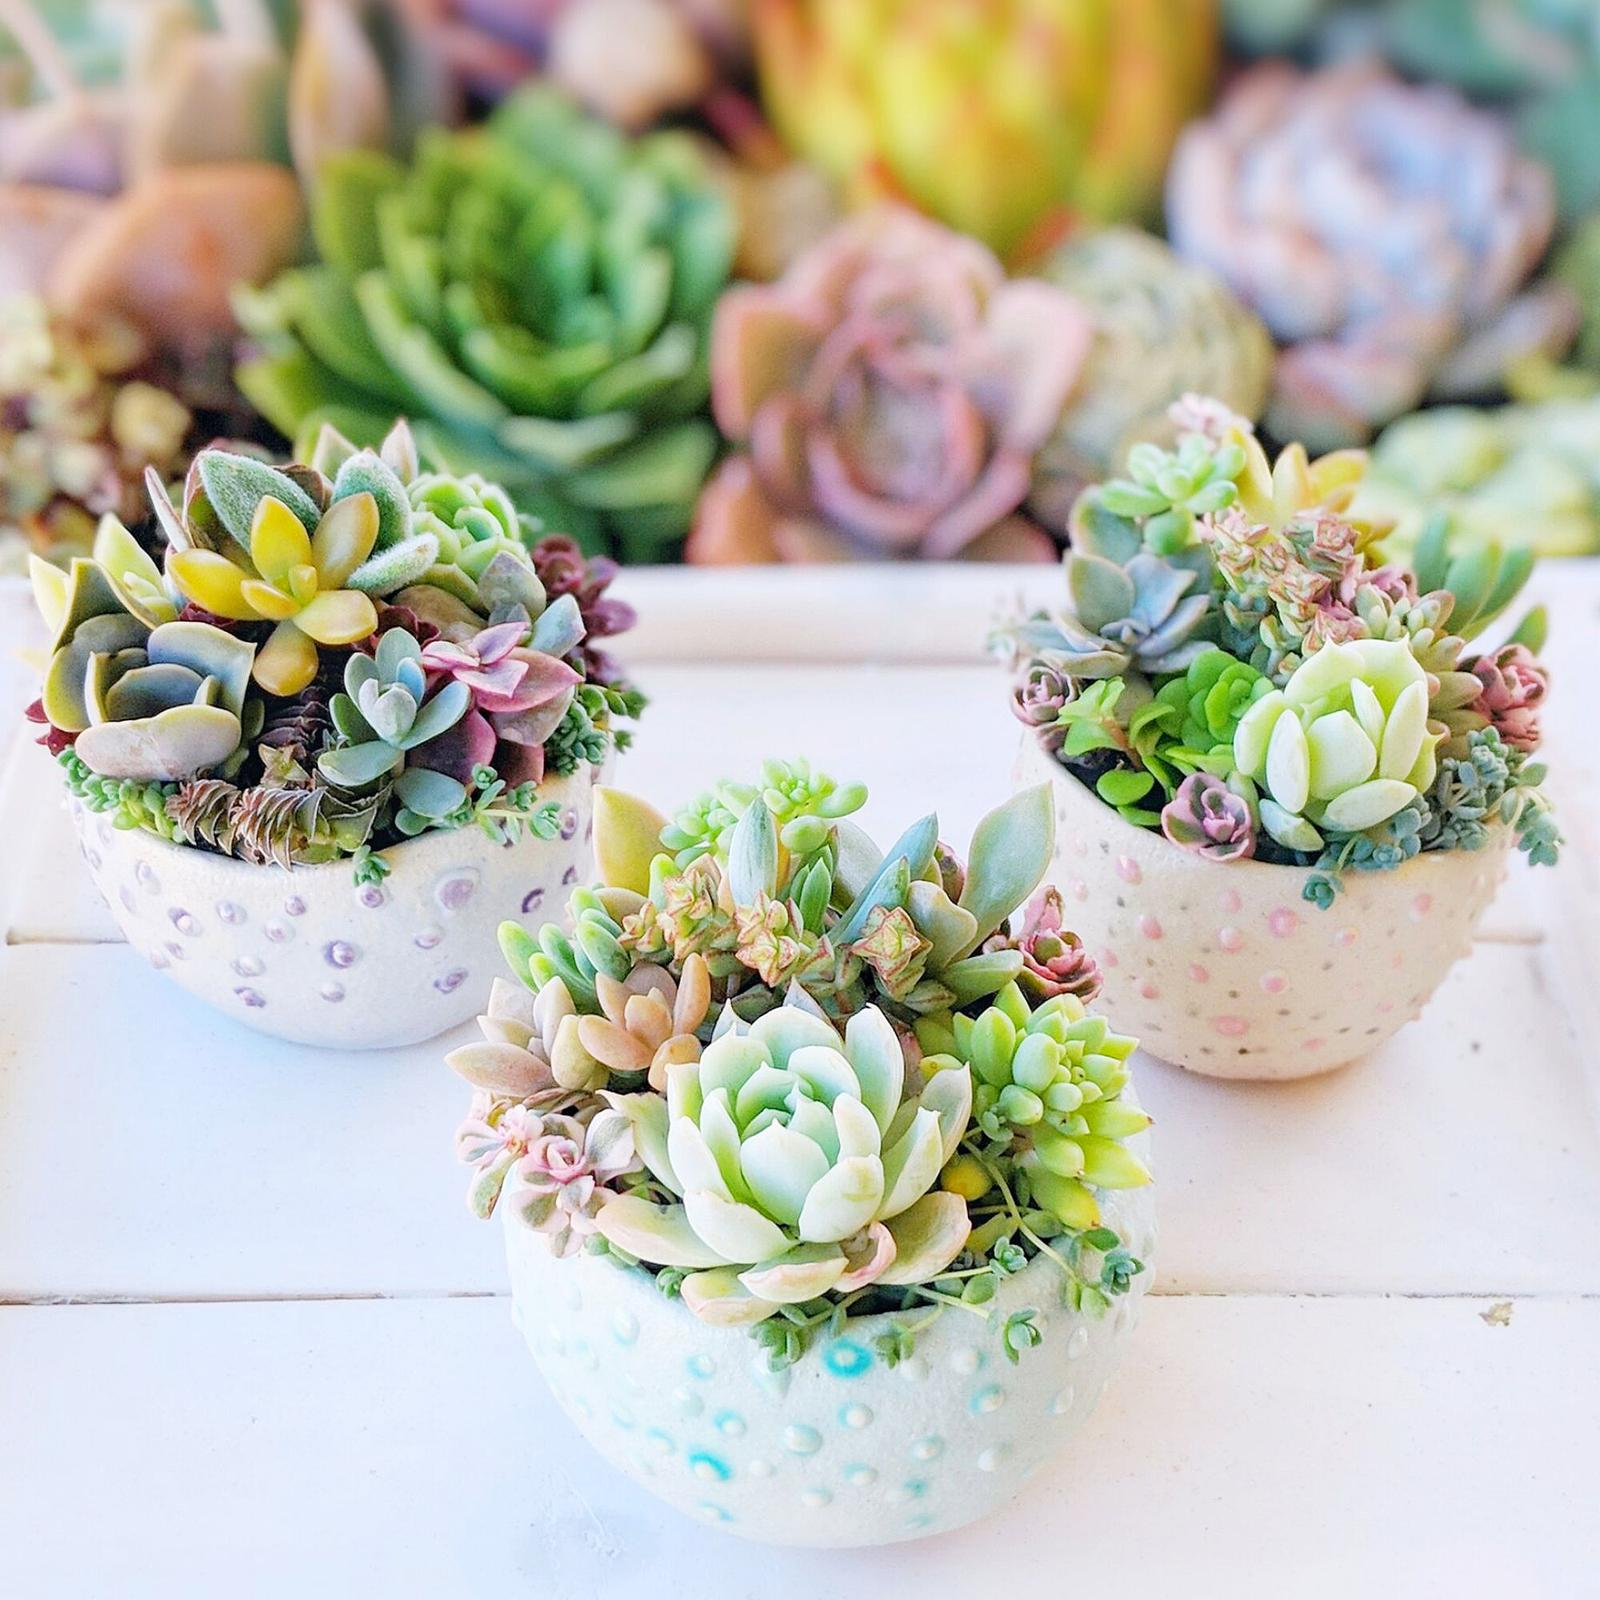 Succulents in handmade pinch pots